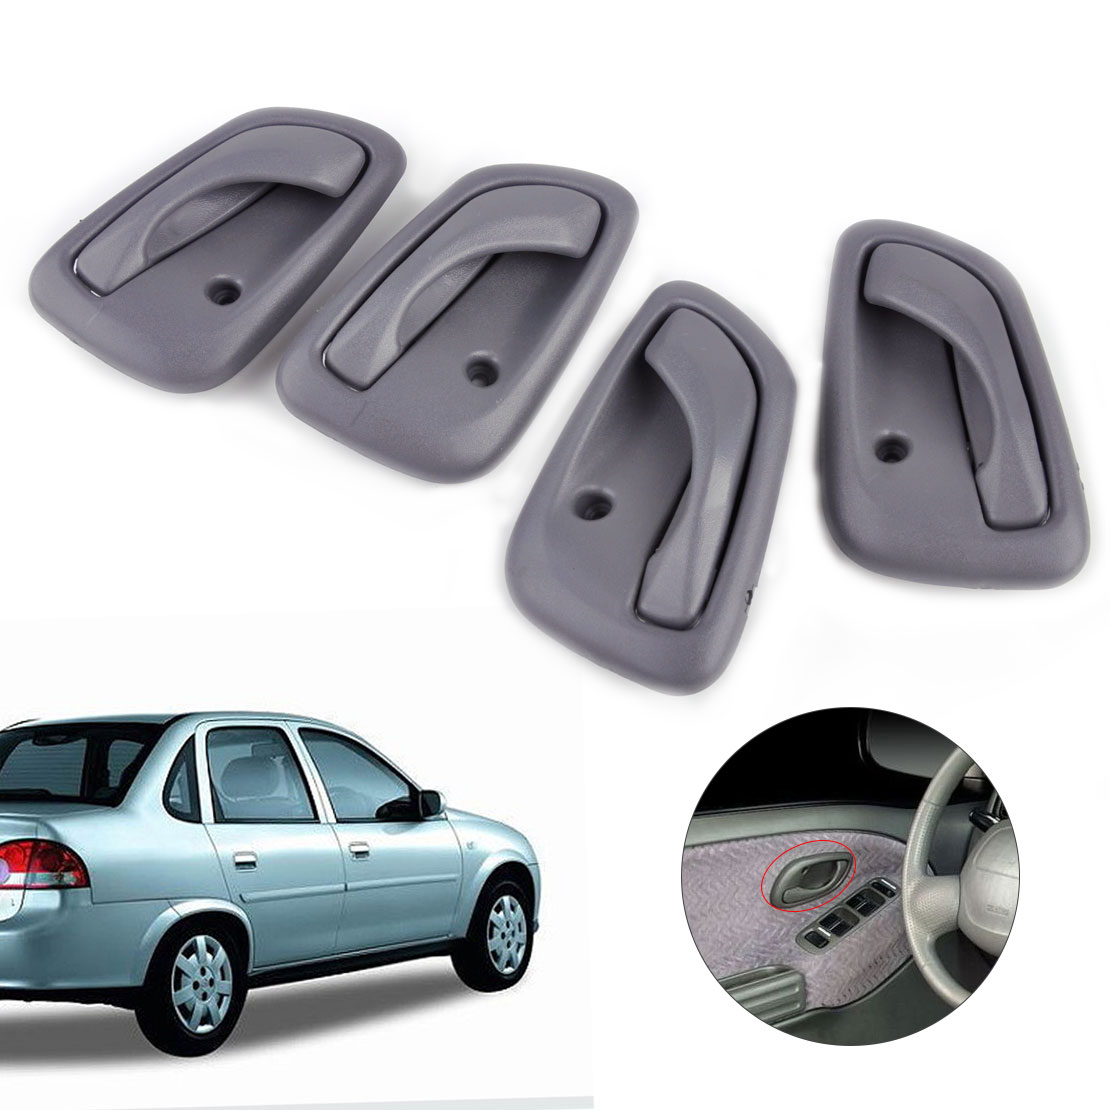 Compare Prices On Tracker Chevy Online Shopping Buy Low Price Used Chevrolet Exterior Door Handles